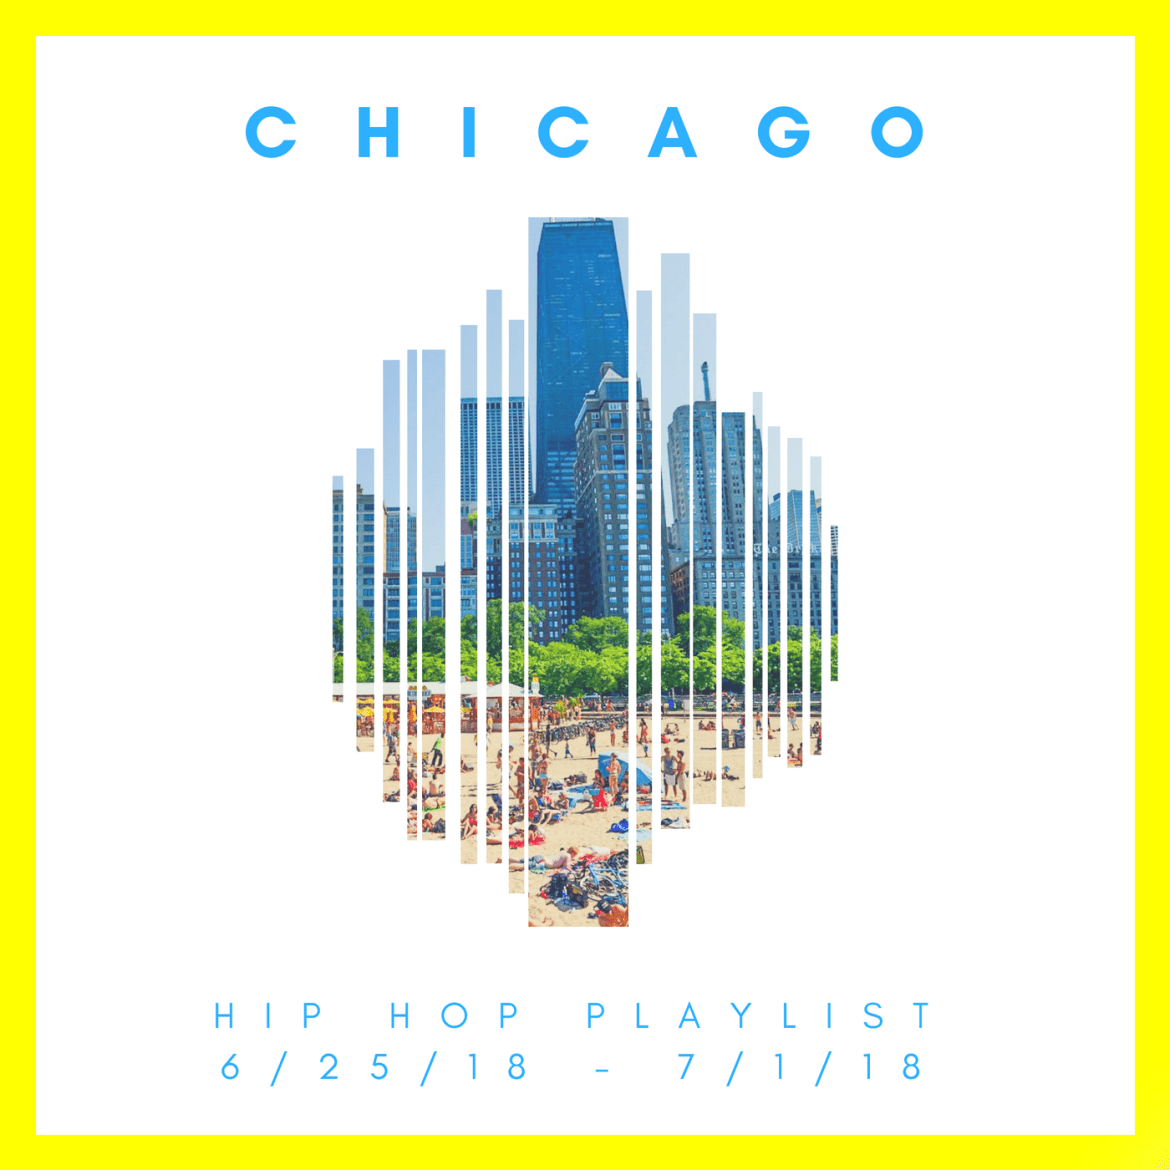 New Chicago Hip Hop Playlist: 6/25/18-7/1/18